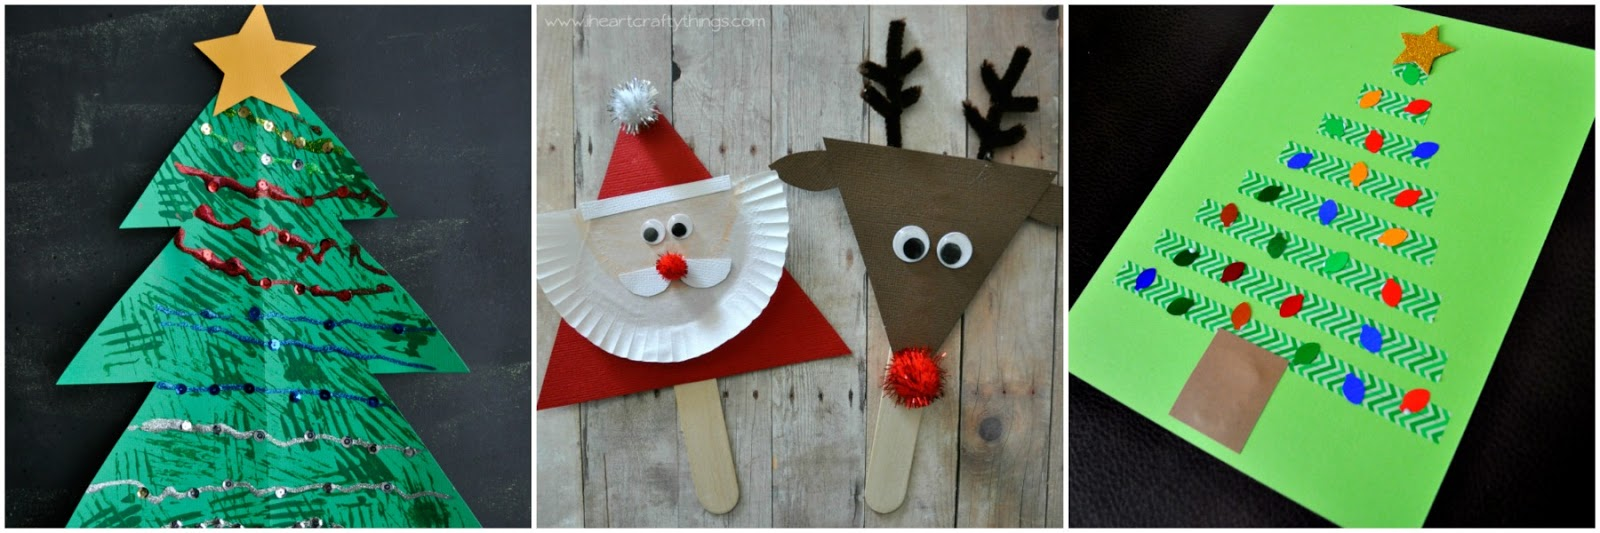 Pinterest Christmas Craft Ideas For Kids Part - 43: More From This Website. Christmas Tree Crafts Pinterest ...